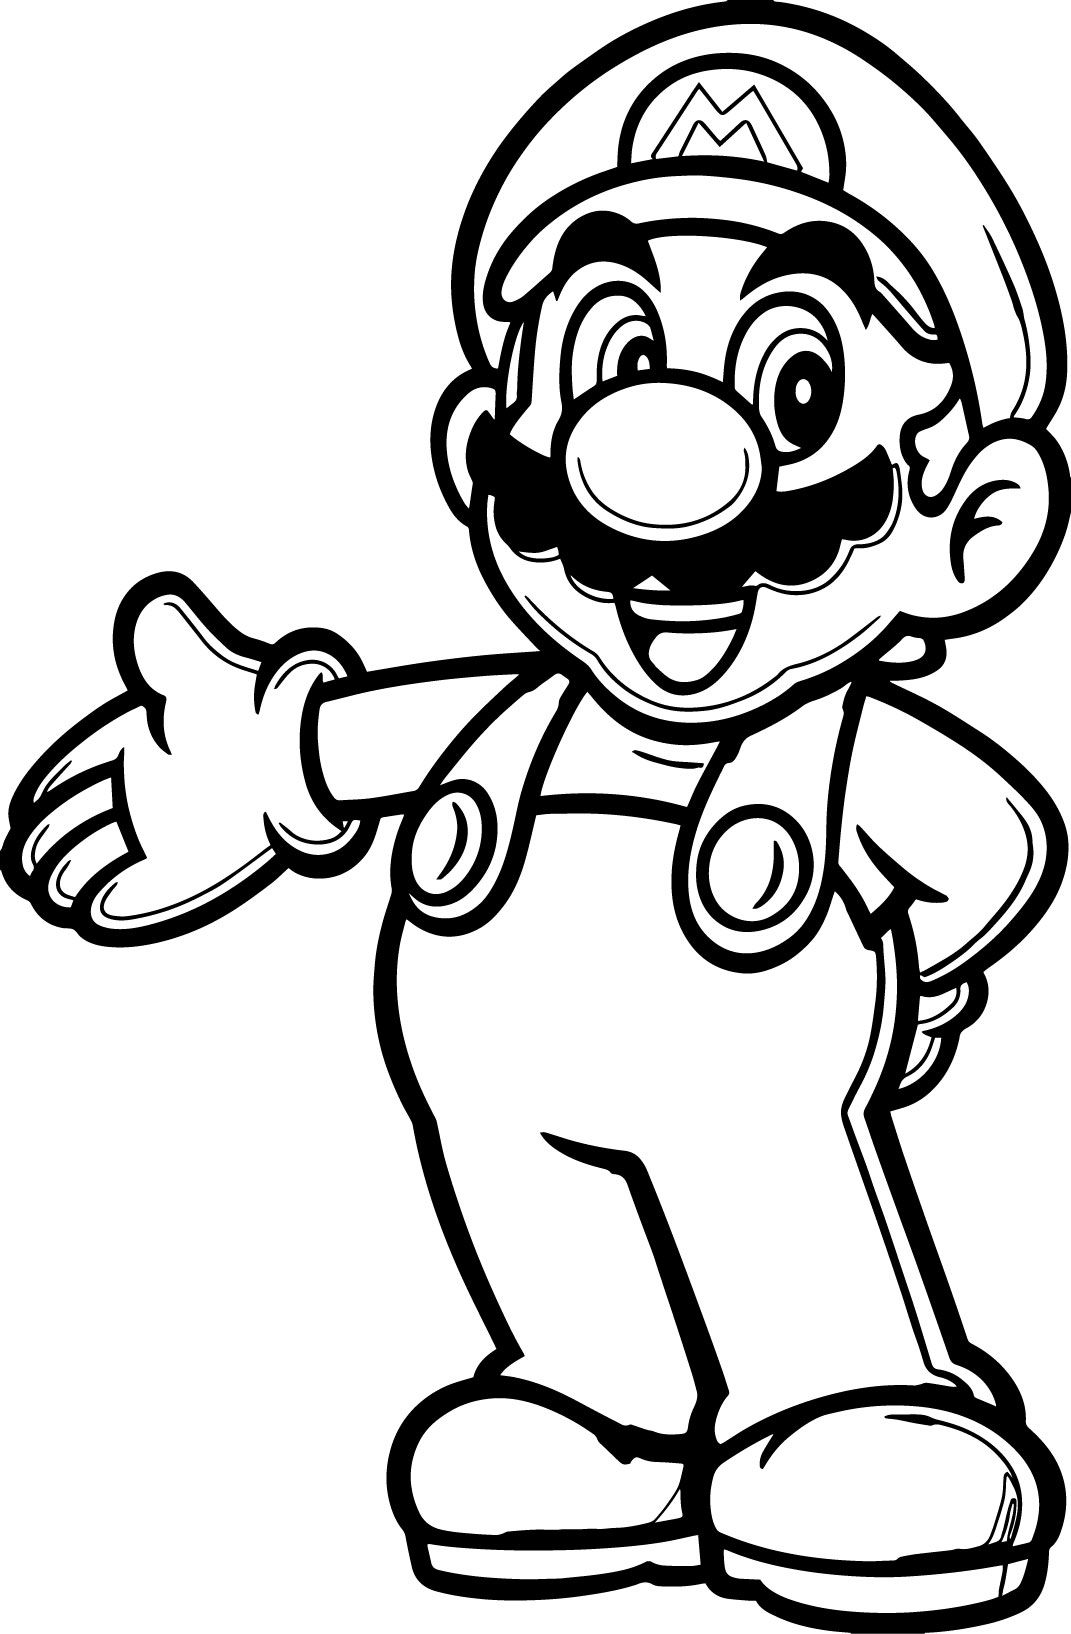 Super Mario Coloring Pages